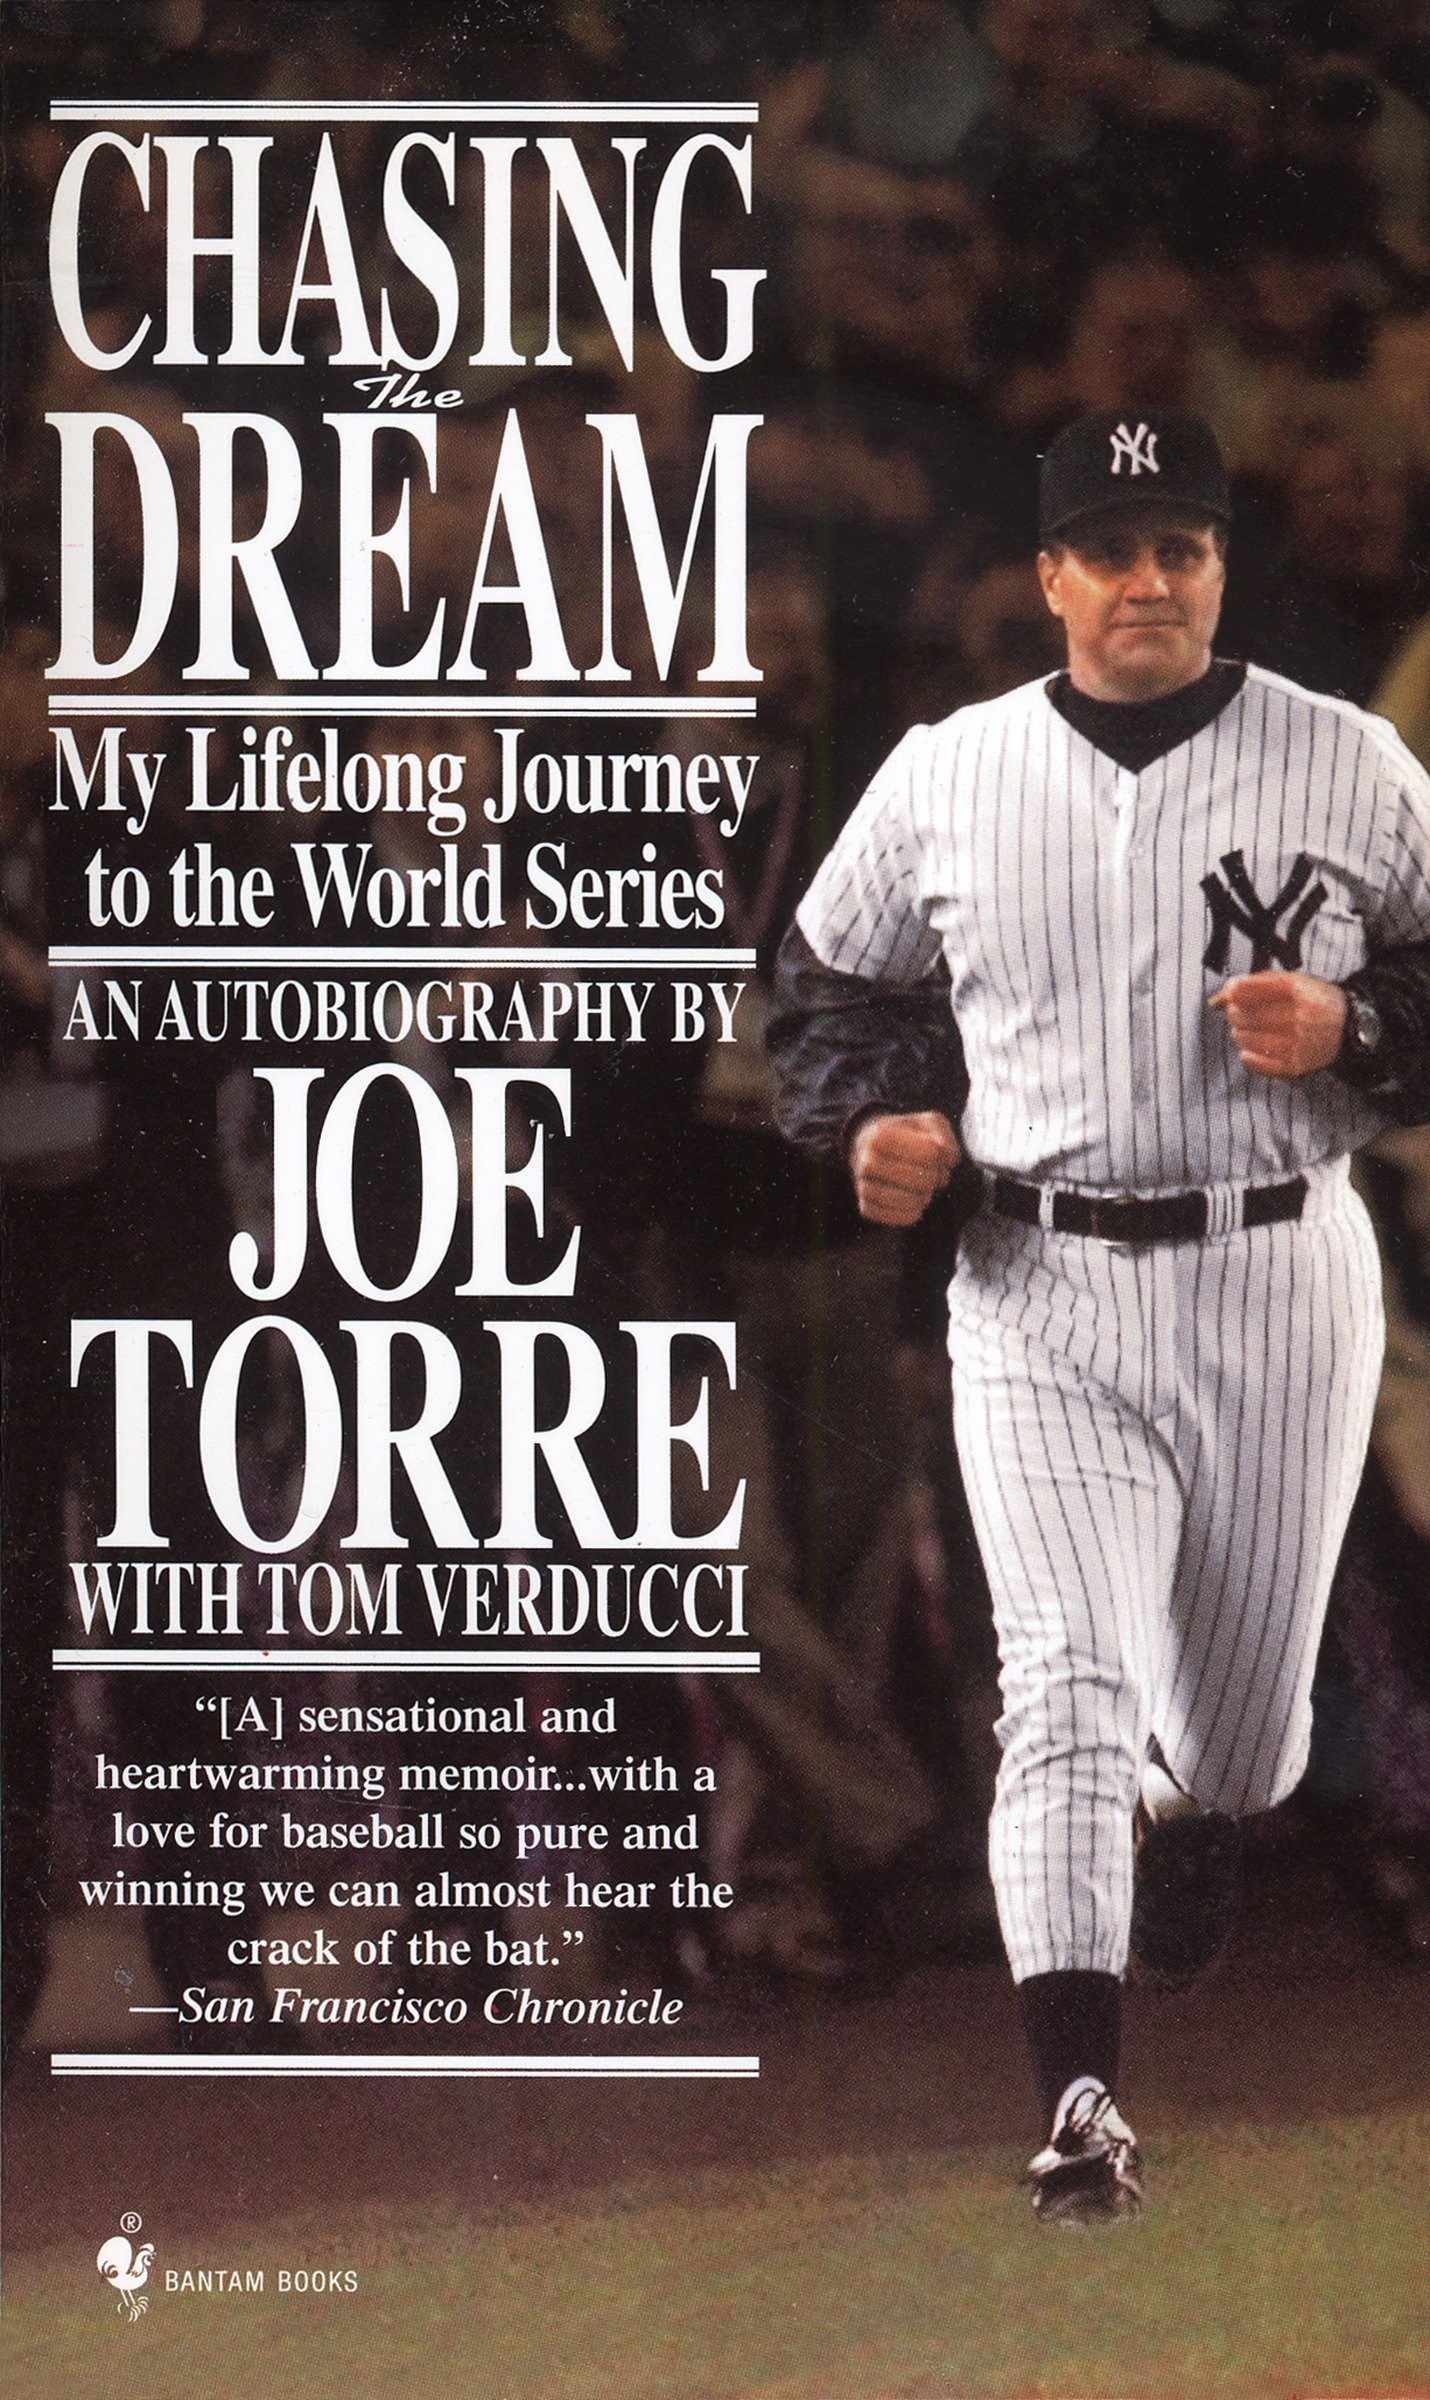 Lets open a dream book: games of chance and sports